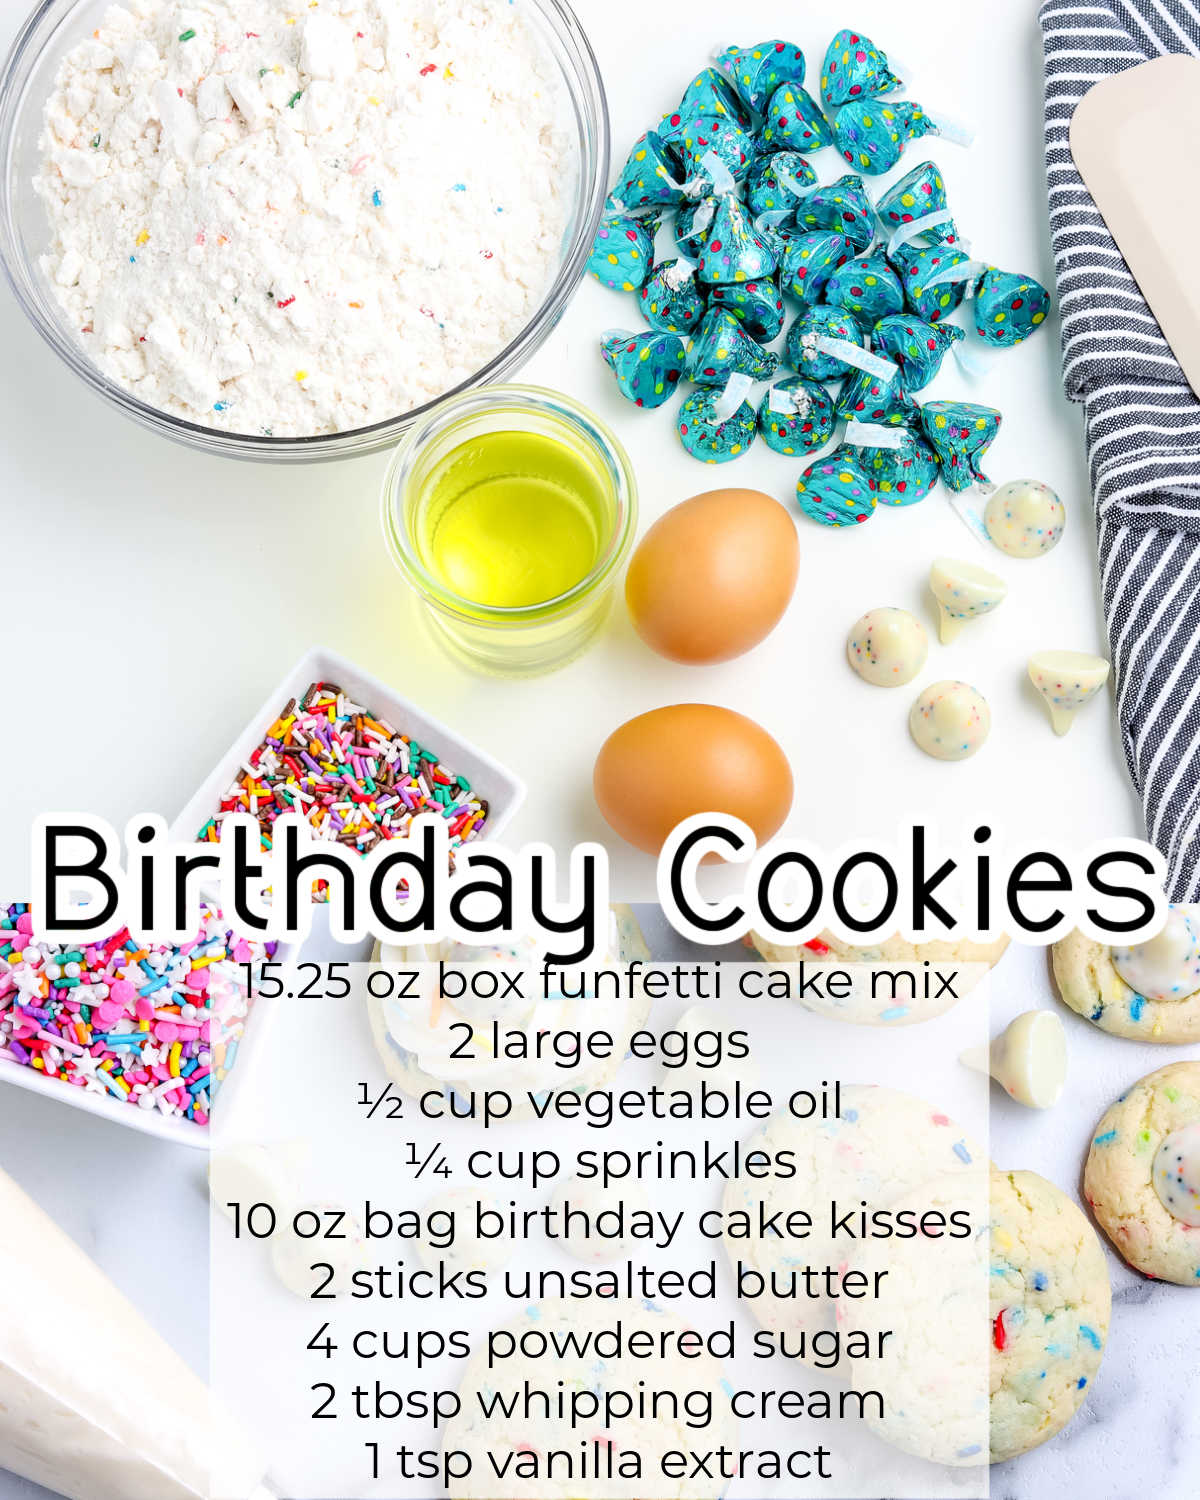 All of the ingredients needed to make this Birthday Cookies Recipe.